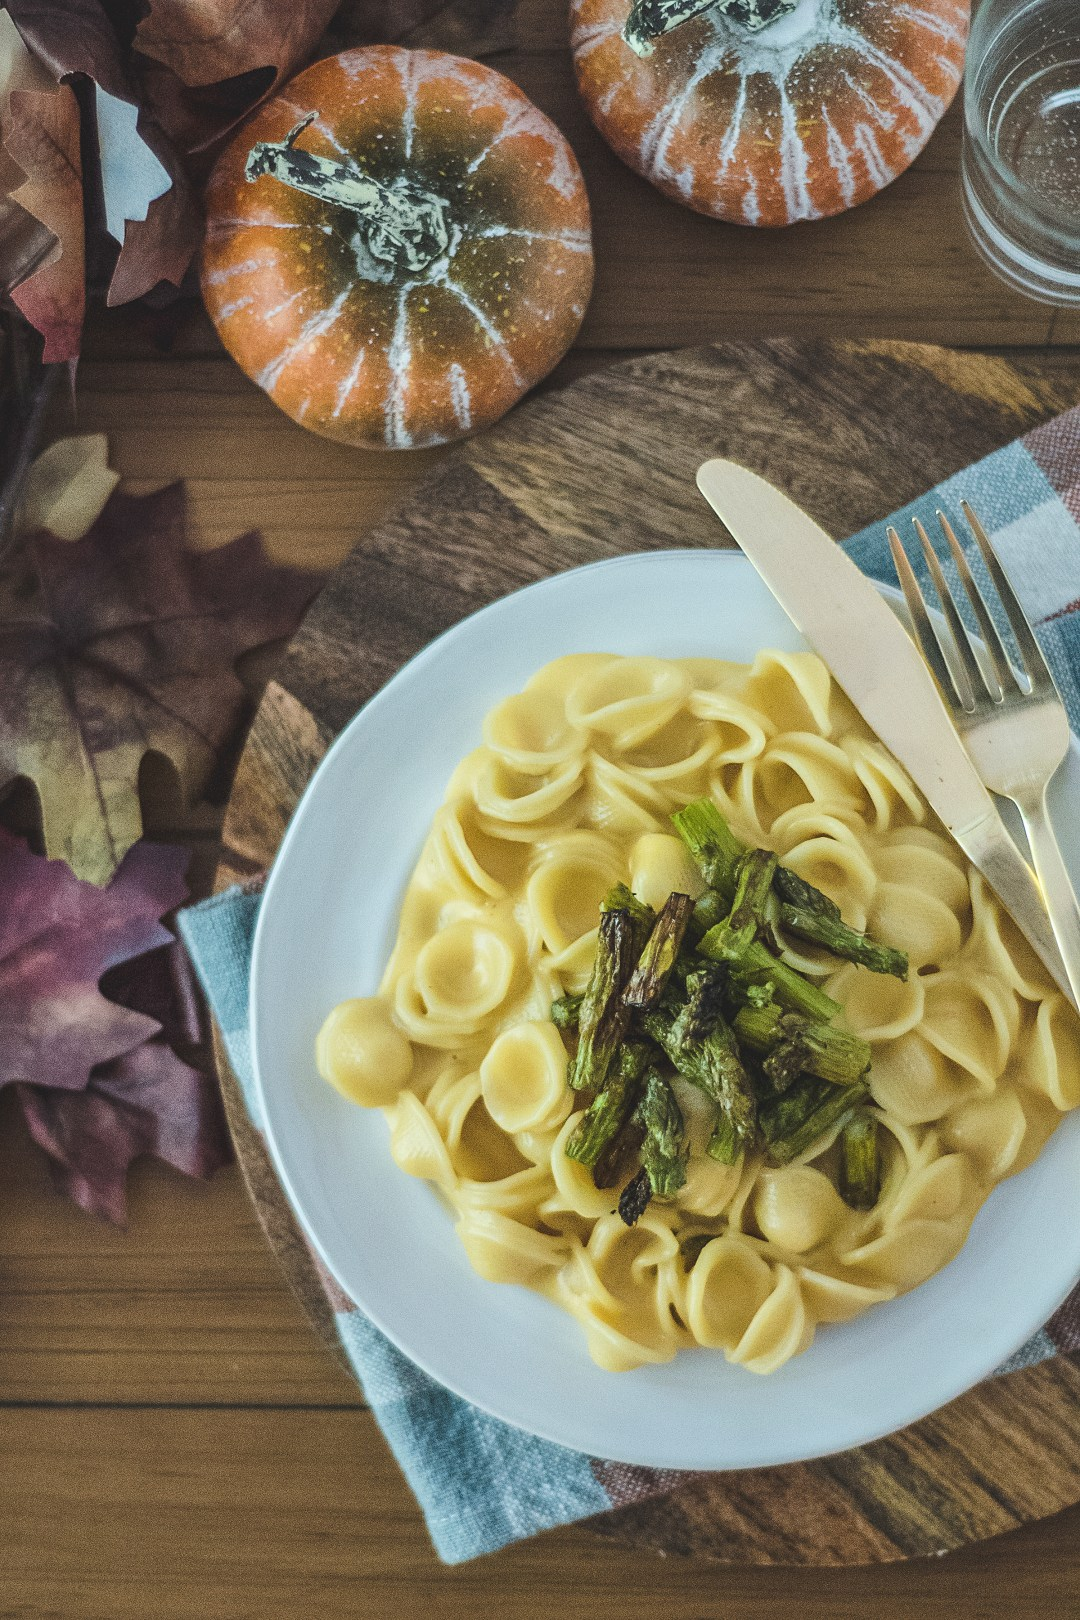 My cheesy orecchiette is just the cheesiest! Featuring both American cheese and Colby jack, it is super creamy and is topped with crunchy roasted asparagus!